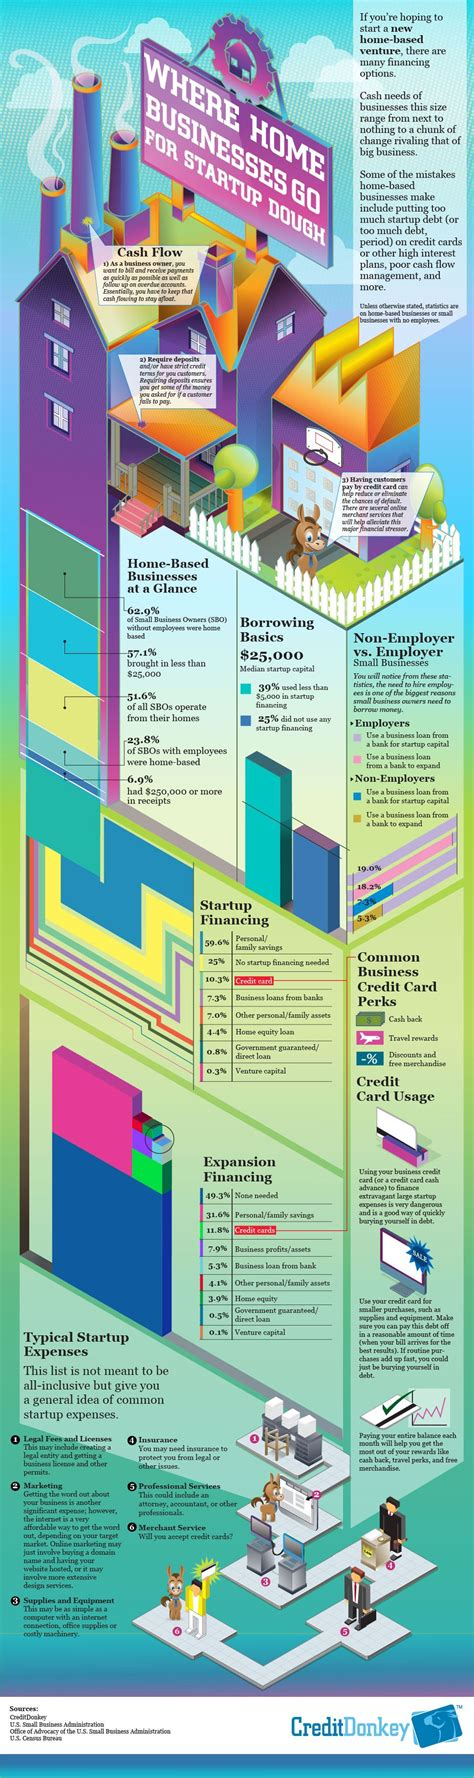 Home business startup financing infographic   rchp.com